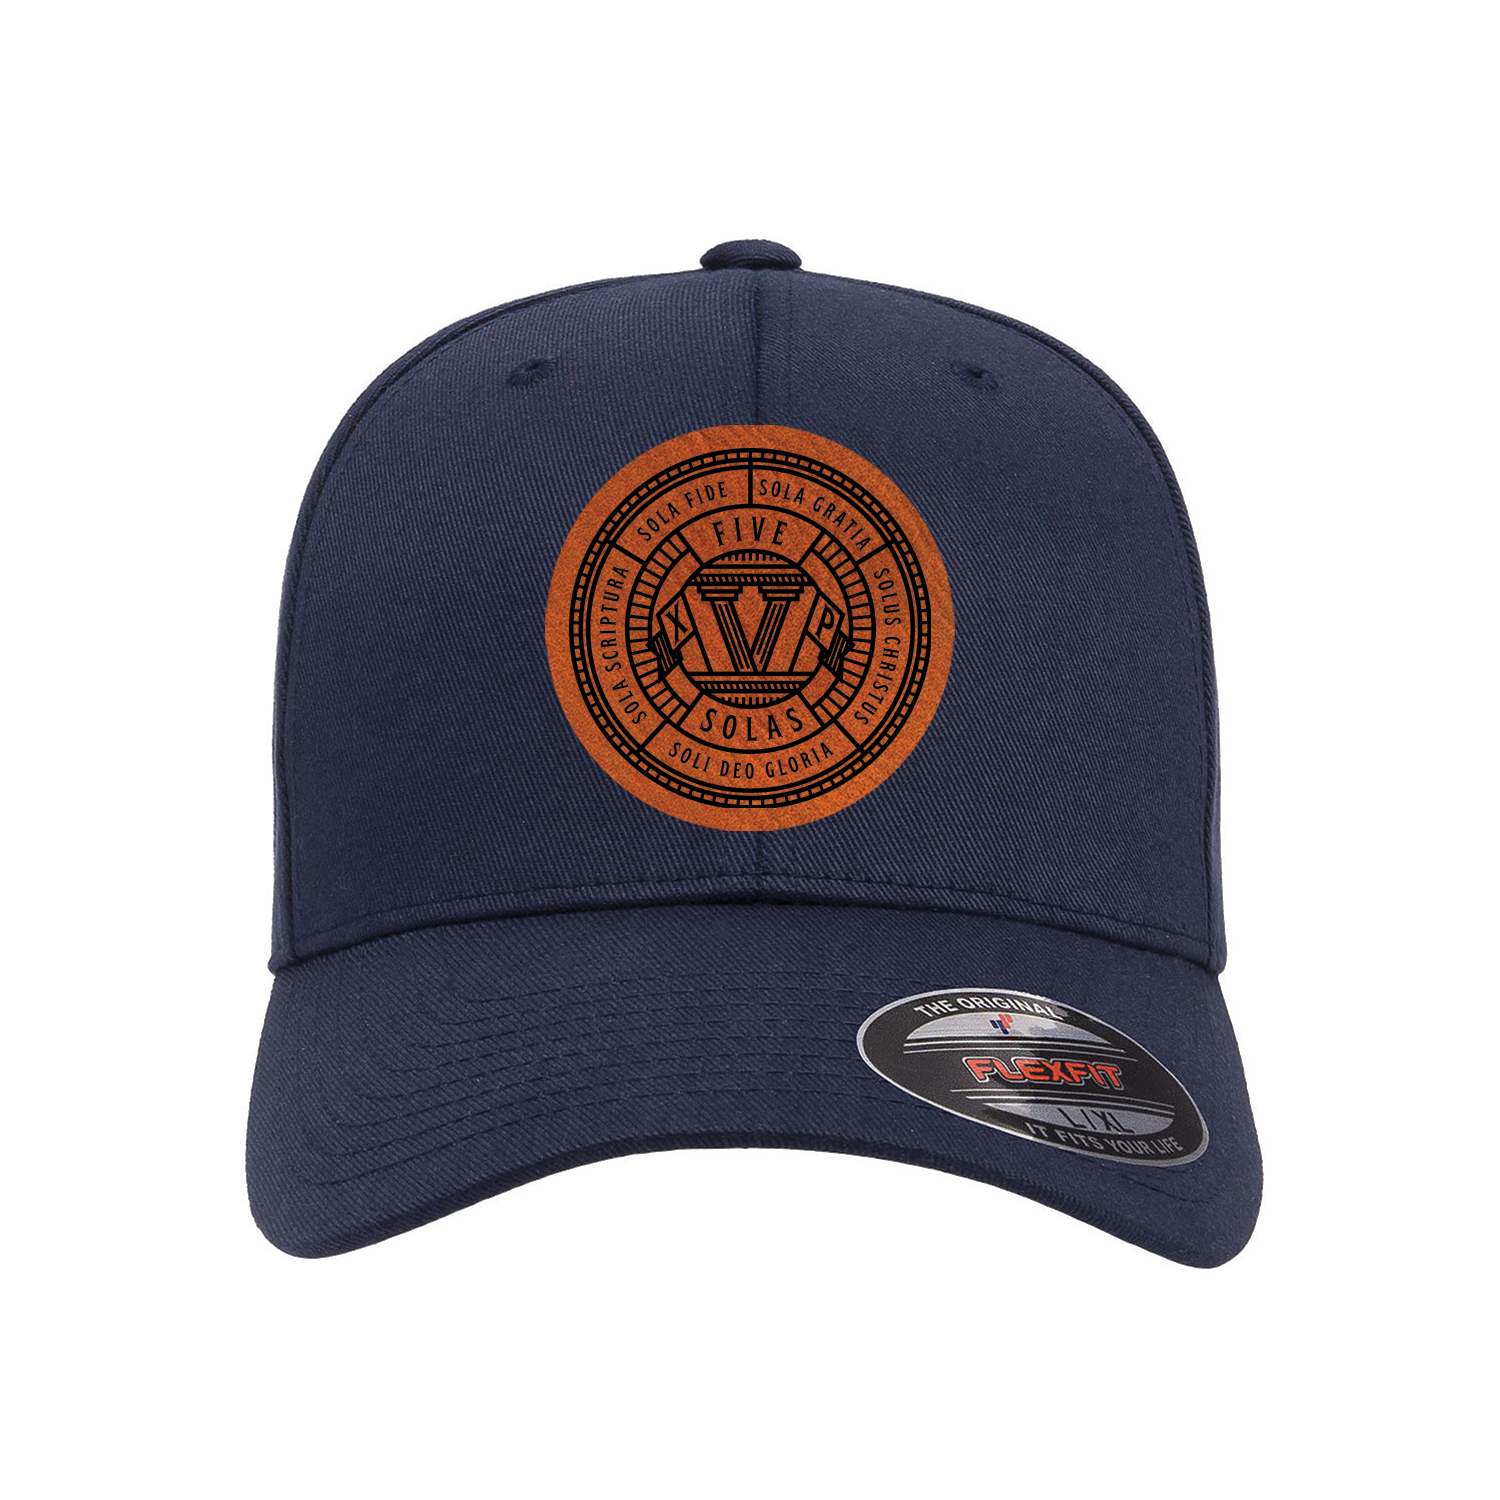 Five Solas Badge Fitted Hat